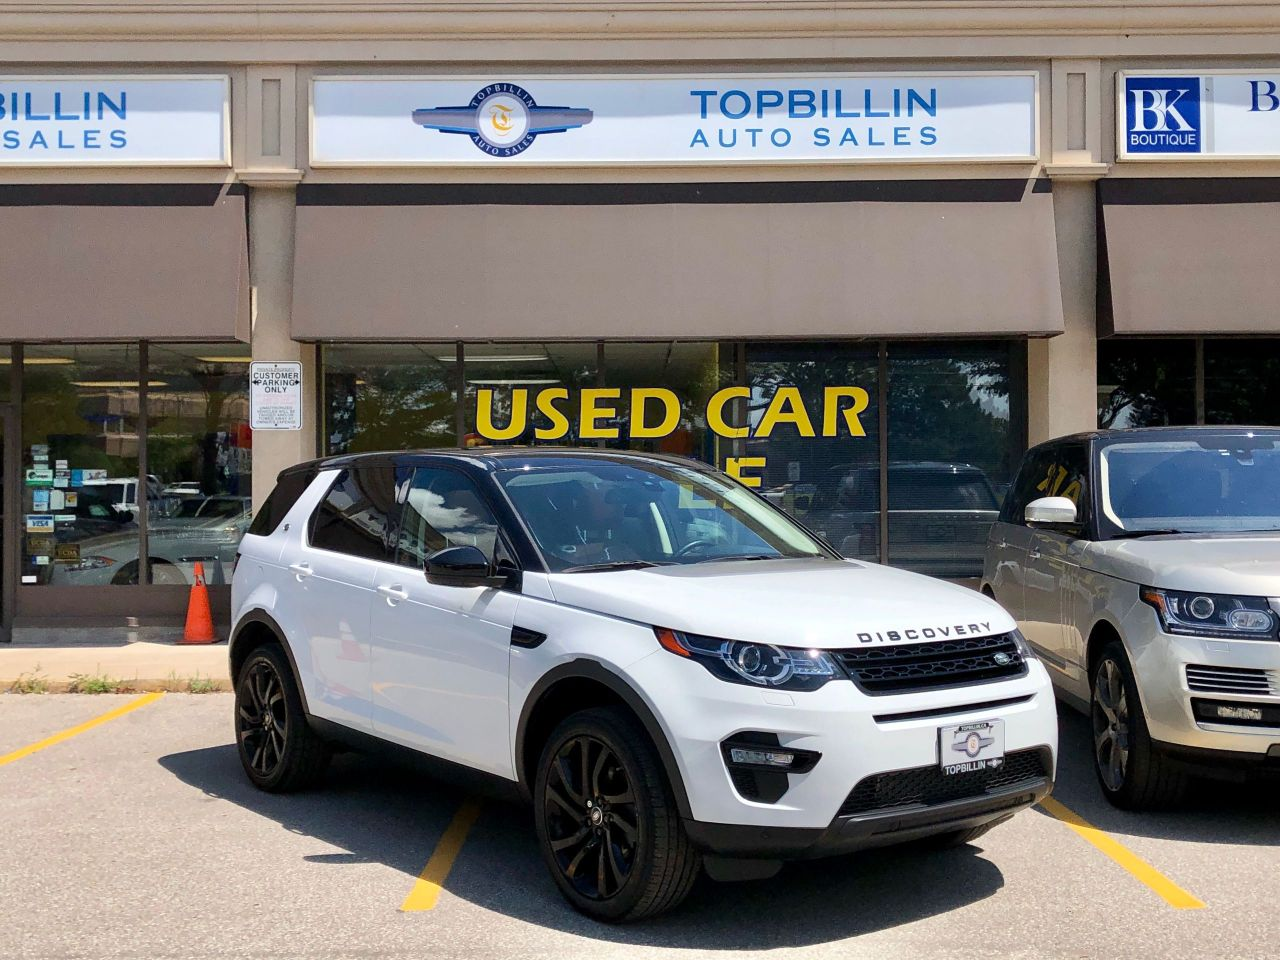 2016 Land Rover Discovery Sport HSE LUXURY, NAVI, BLIND SPOT